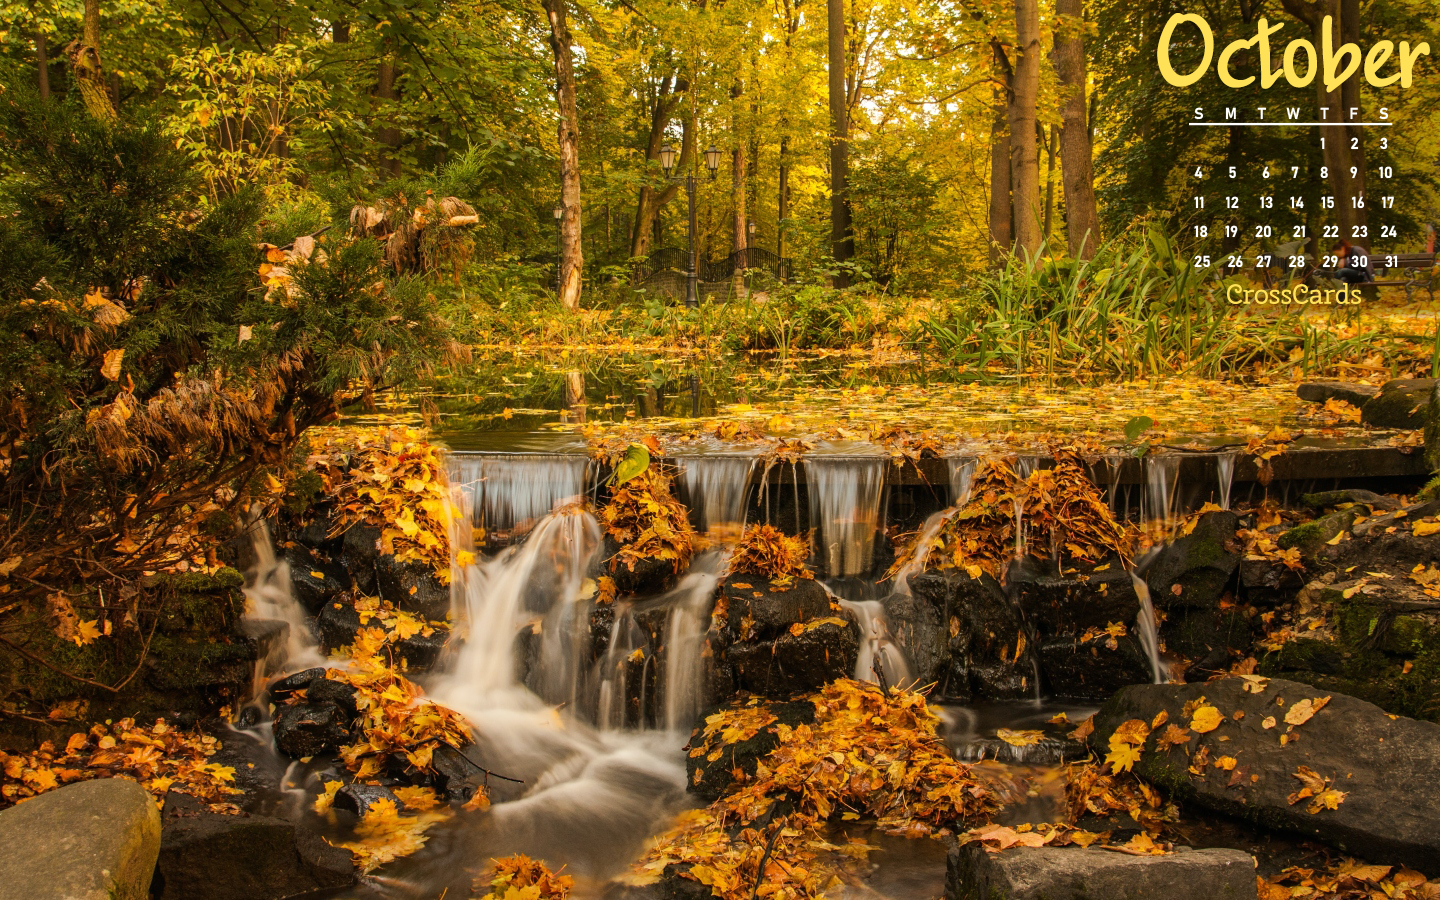 October 2020 - Autumn Waterfall mobile phone wallpaper